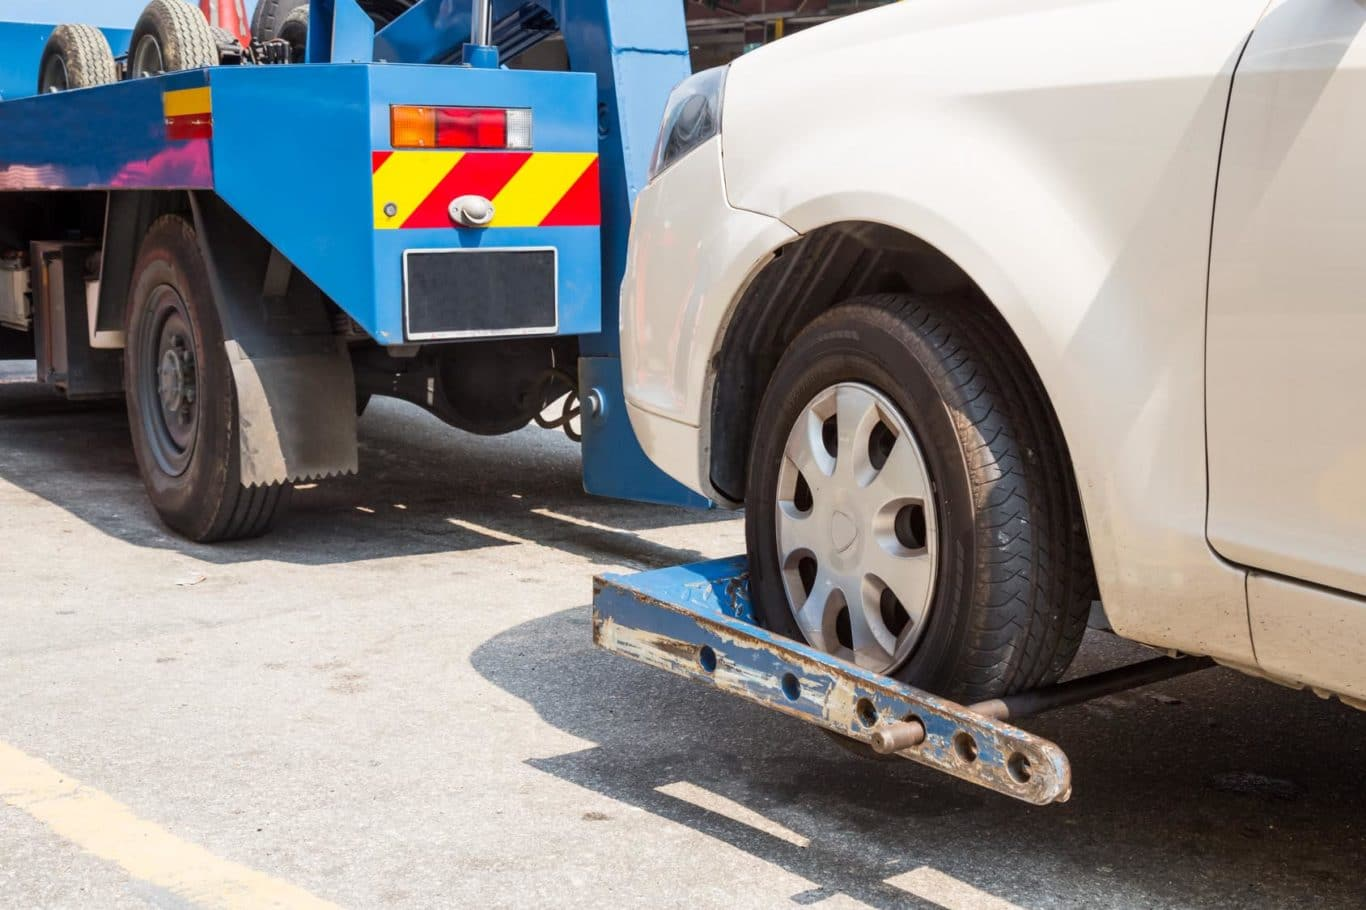 Laytown-Bettystown-Mornington expert Towing services